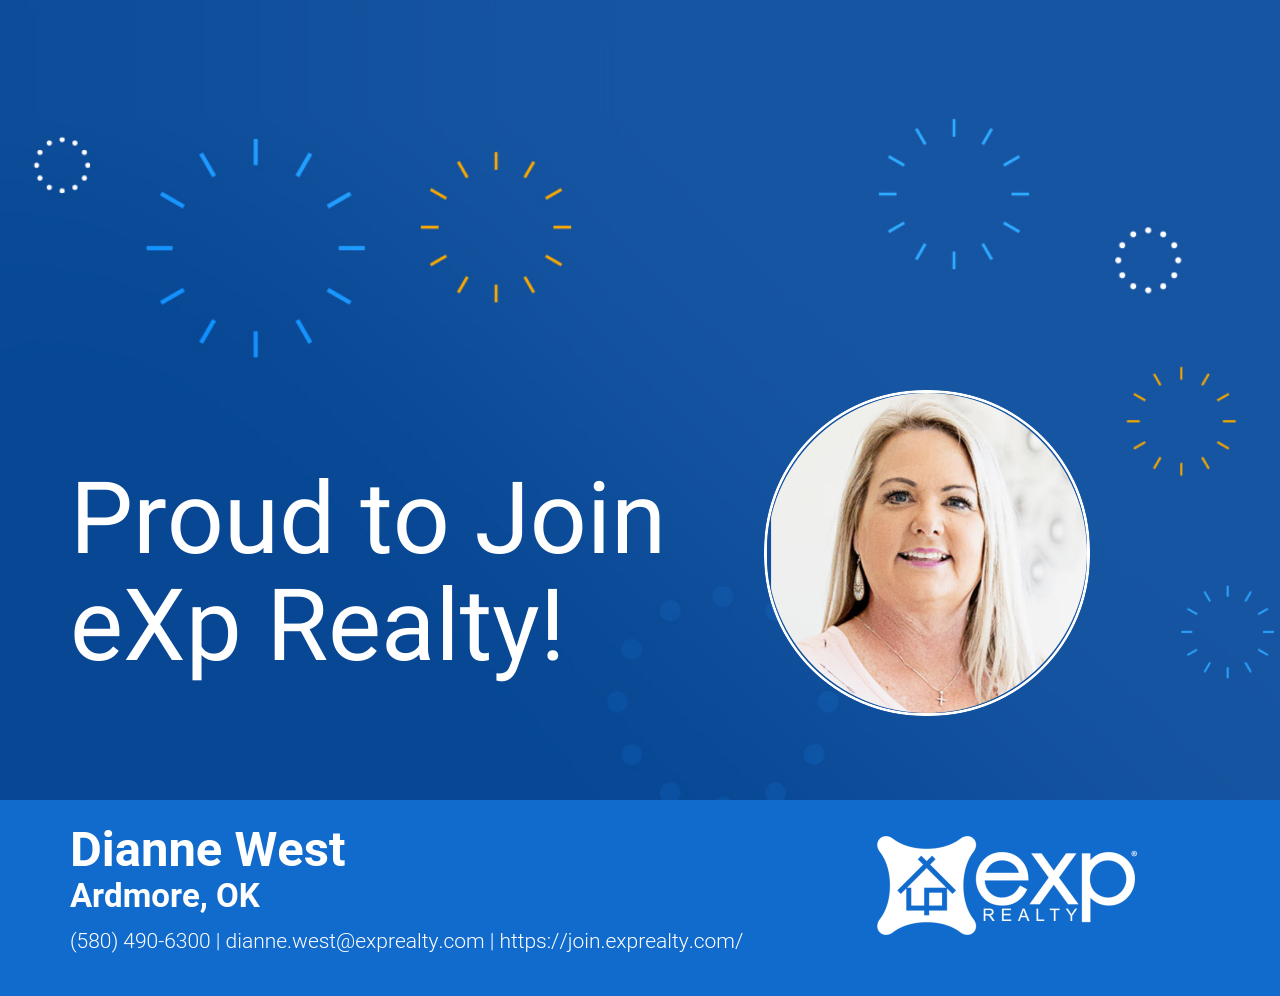 eXp Realty Welcomes Dianne West!